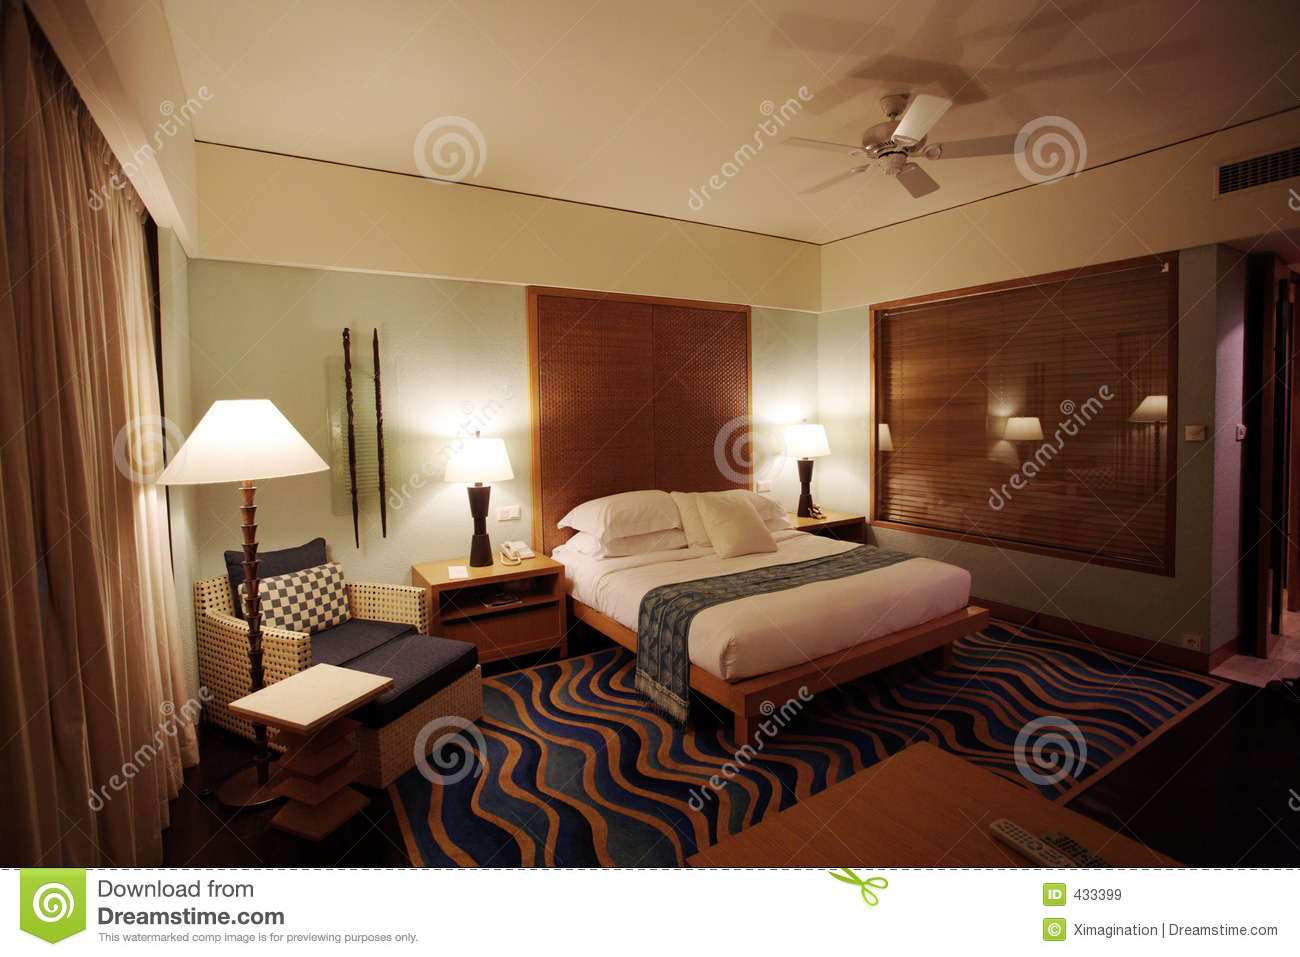 Five star hotel bedroom stock image image of relax for 5 bedroom